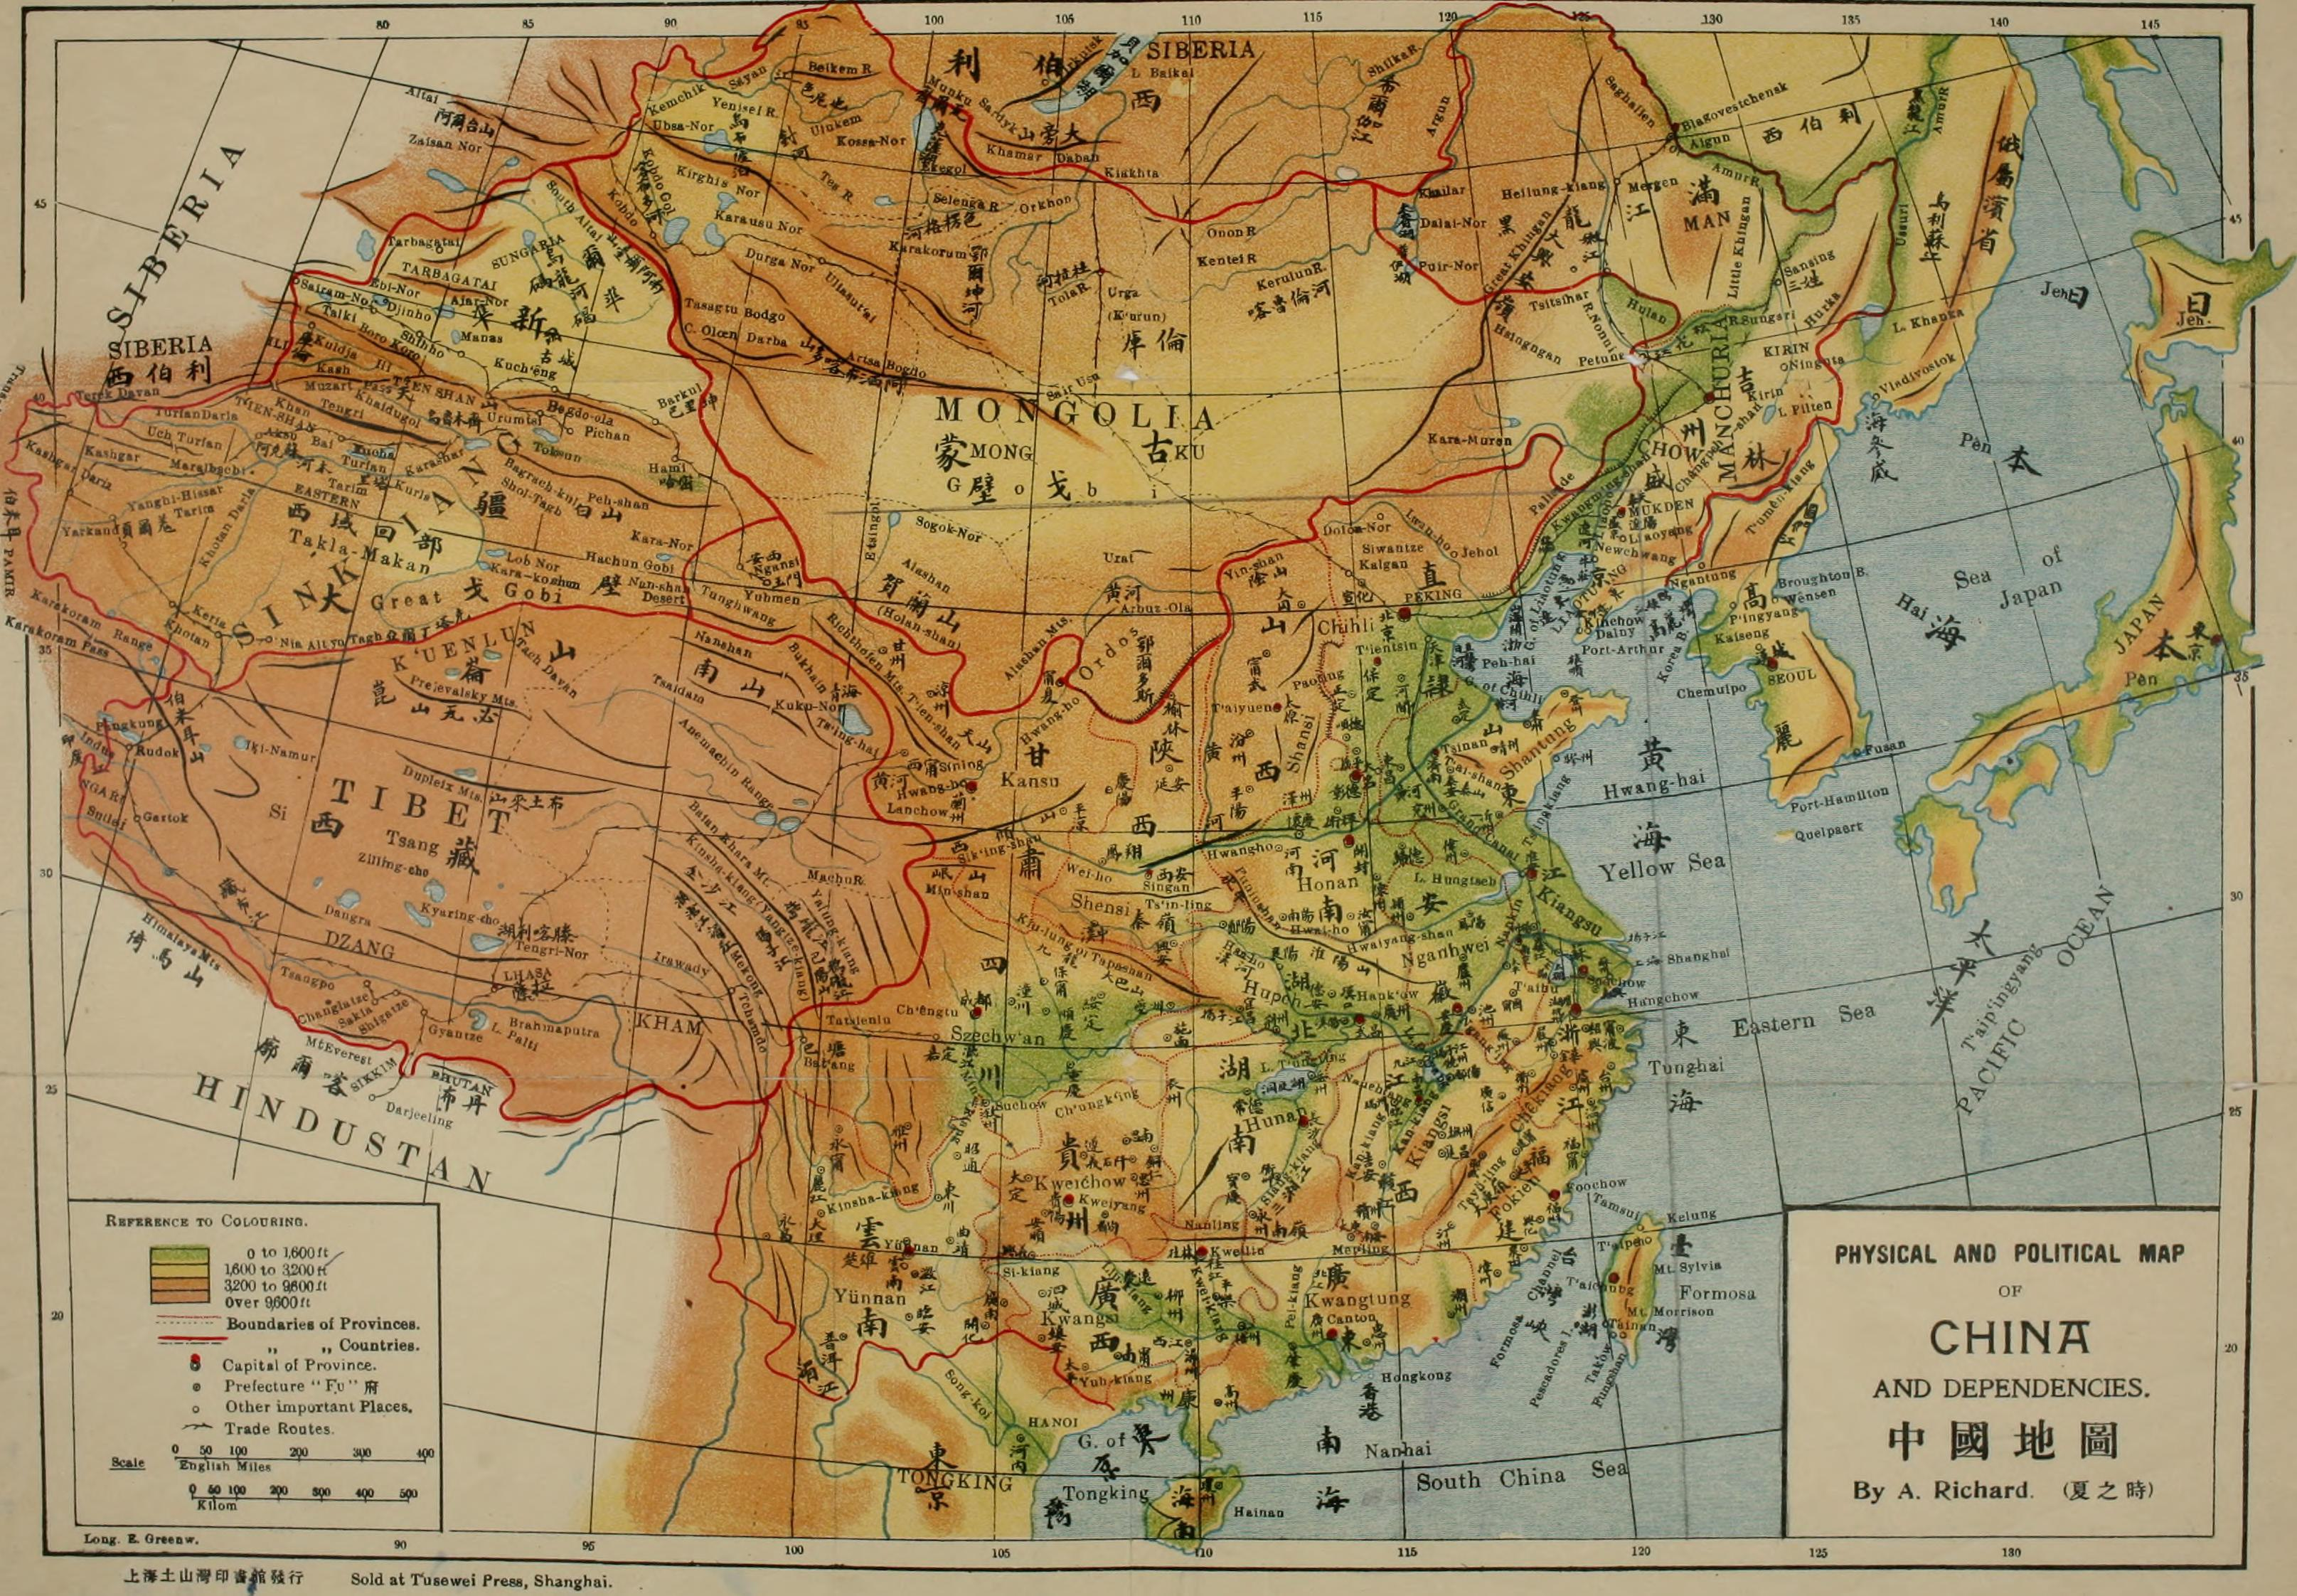 Chinese Geography File L Richard S Comprehensive Geography Of The Chinese Empire